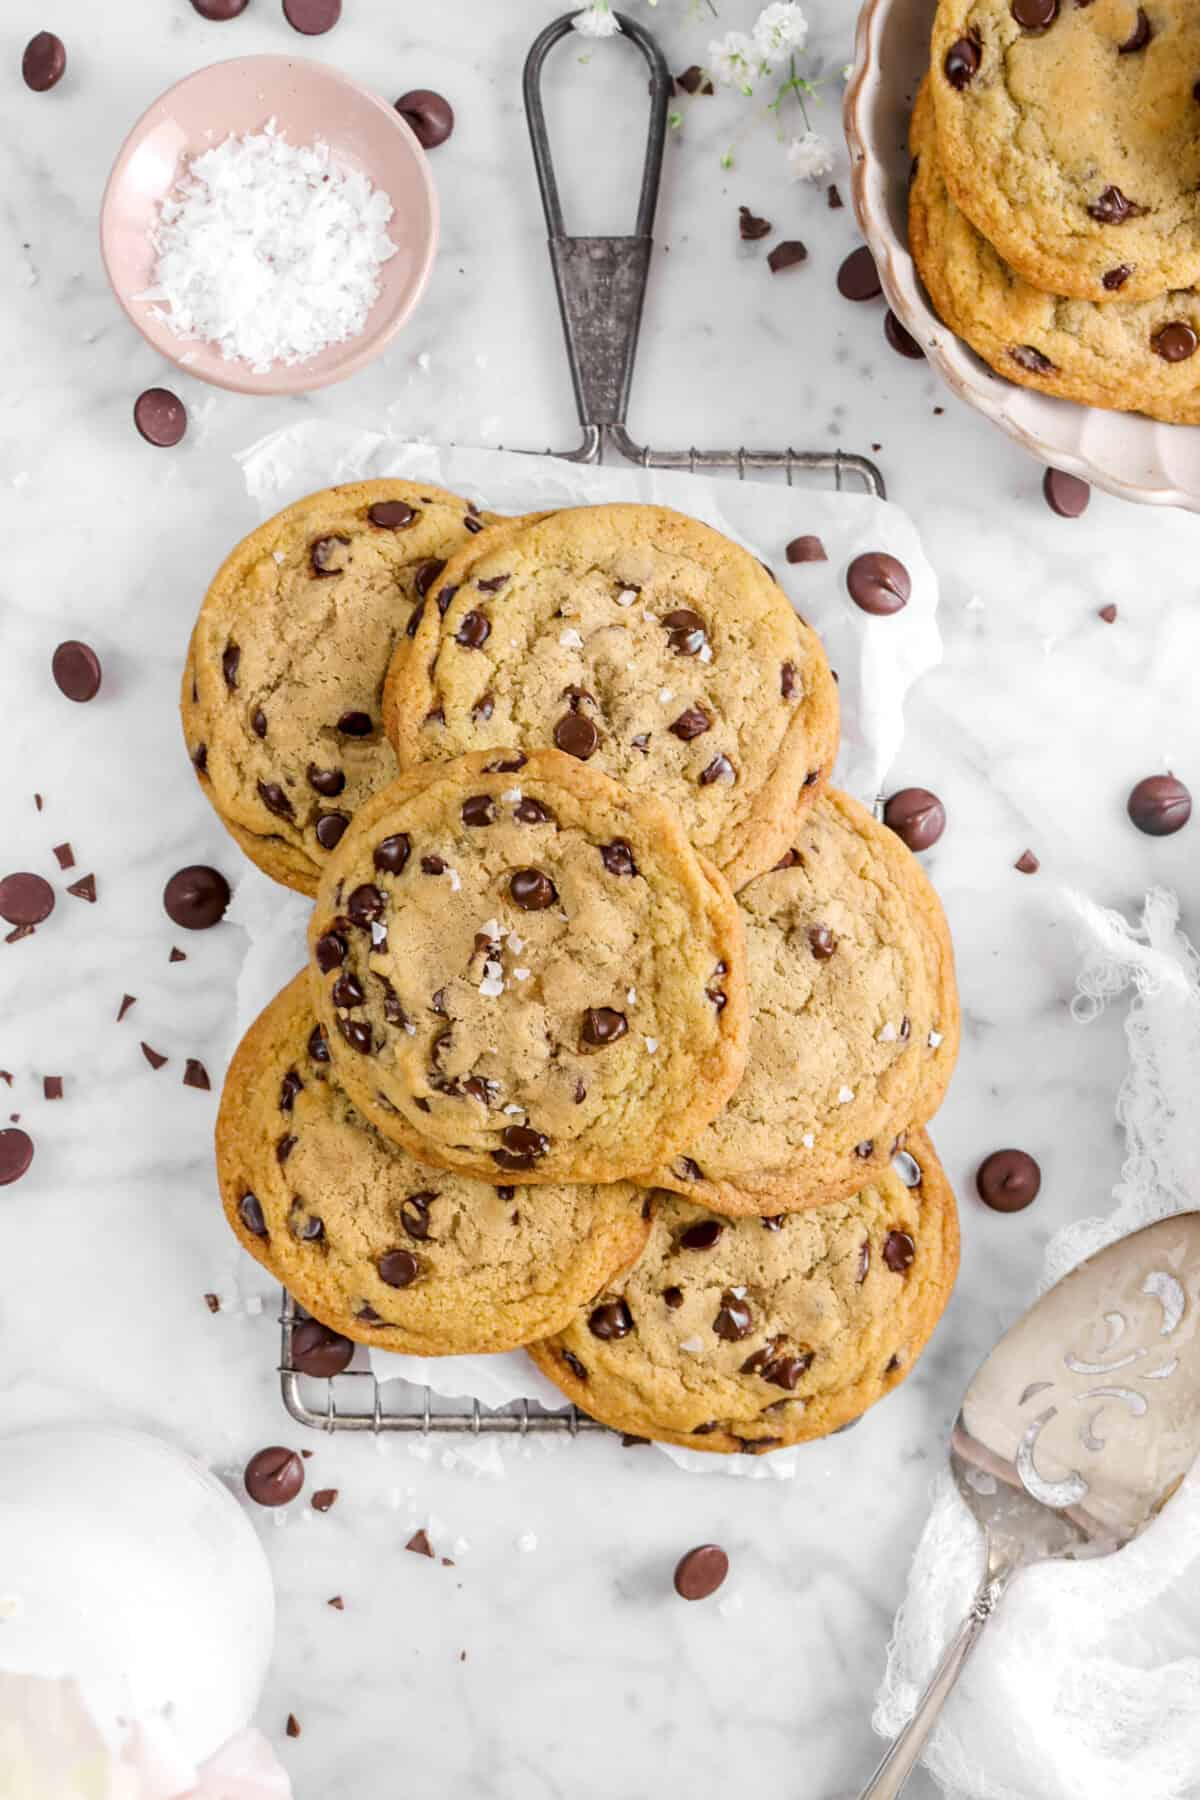 overhead shot of six cookies on tray with chocolate chips, a bowl of salt, and a cake knife